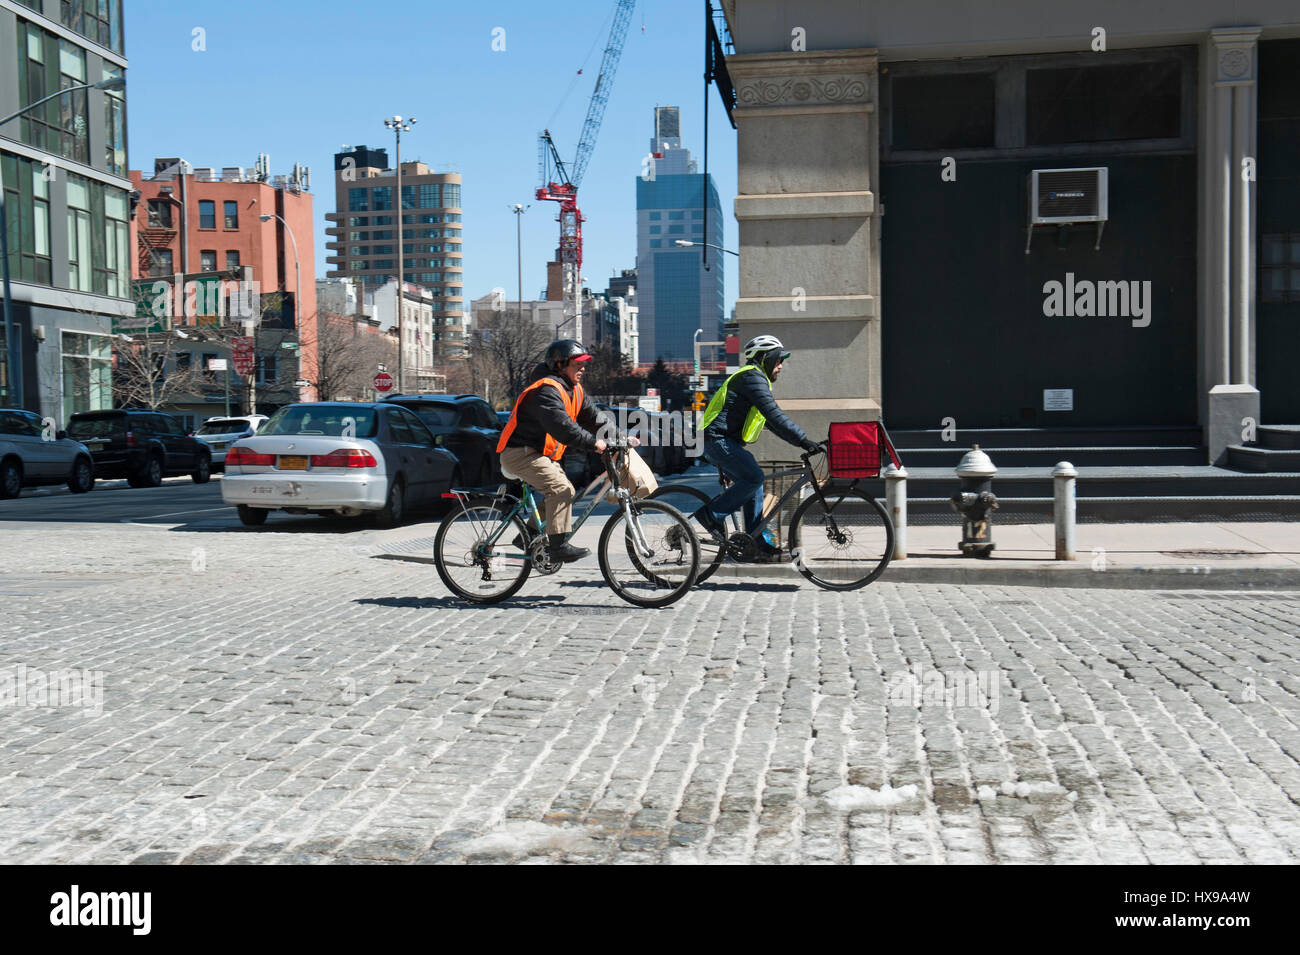 Bicycle messengers pedaled down Greenwich Street in Tribeca, a historic neighborhood in Lower Manhattan. March 23, - Stock Image